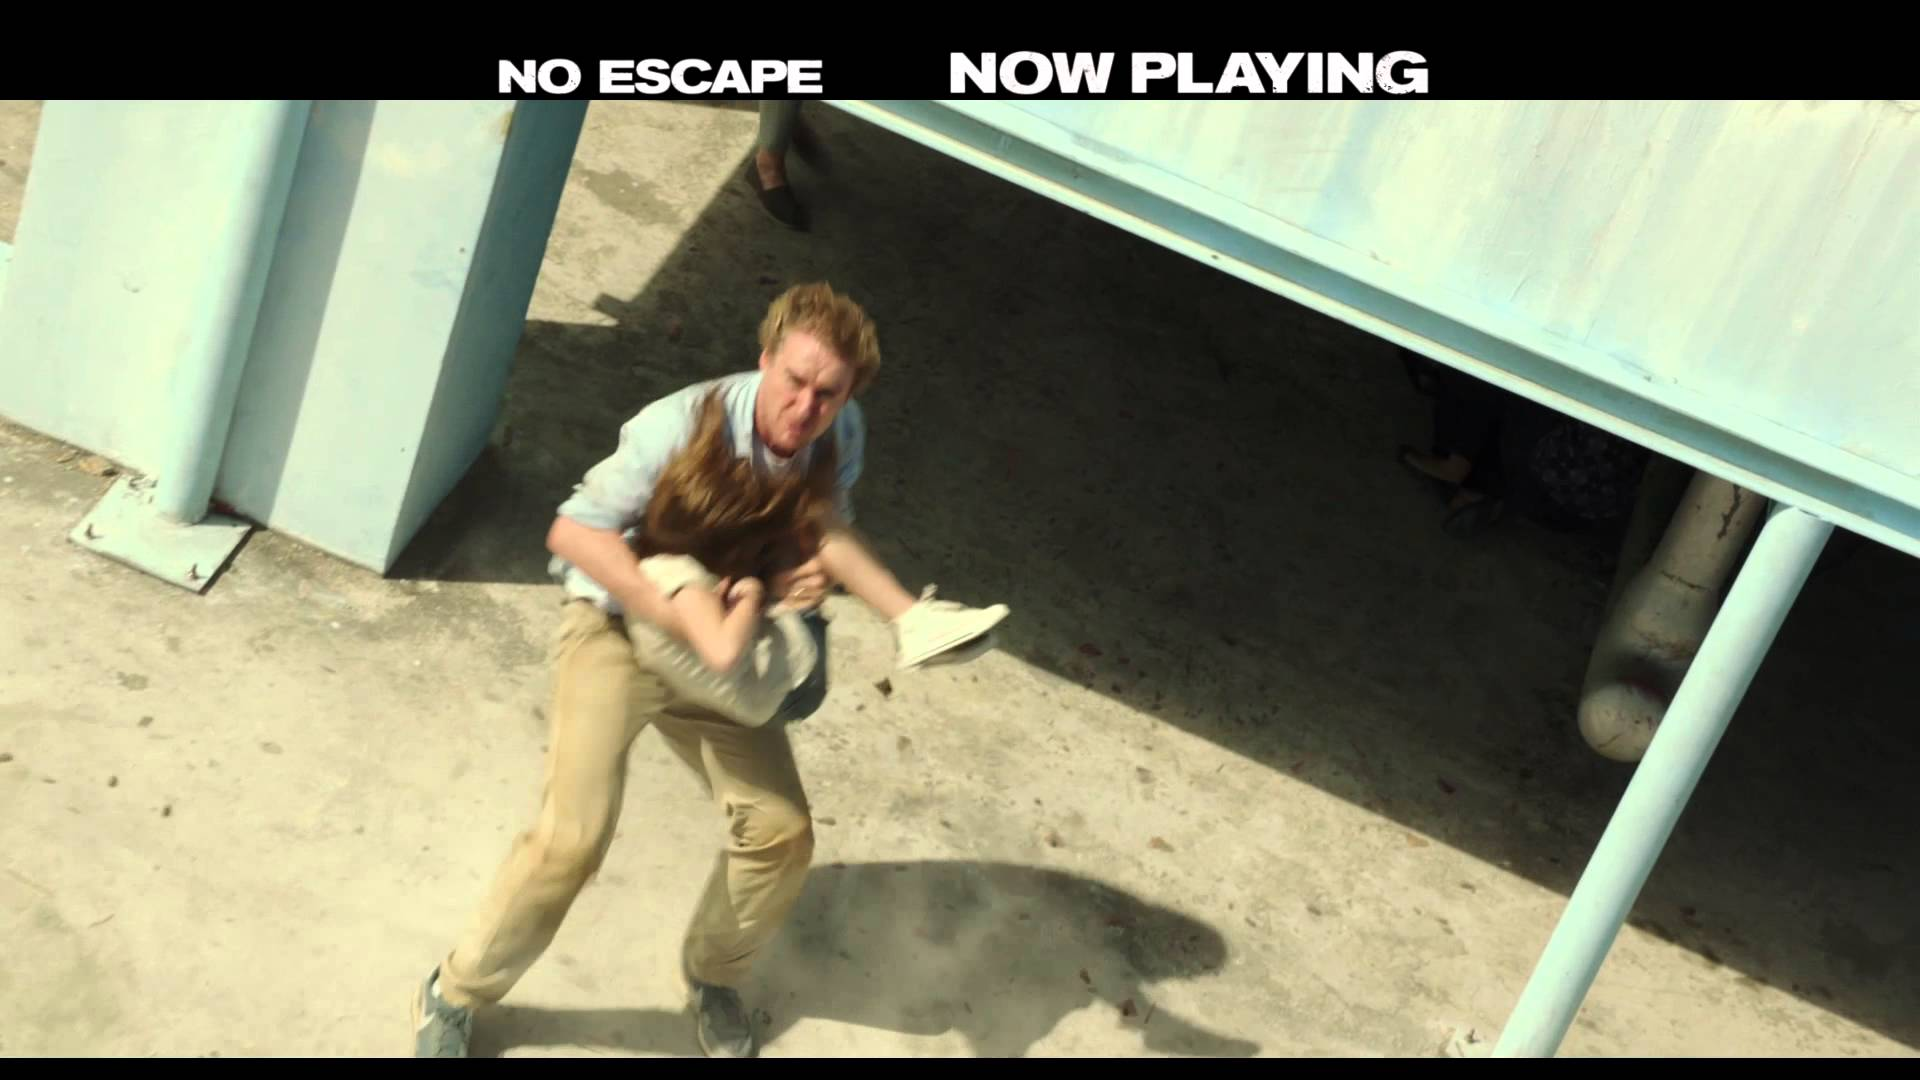 NO ESCAPE – Astounding – The Weinstein Company